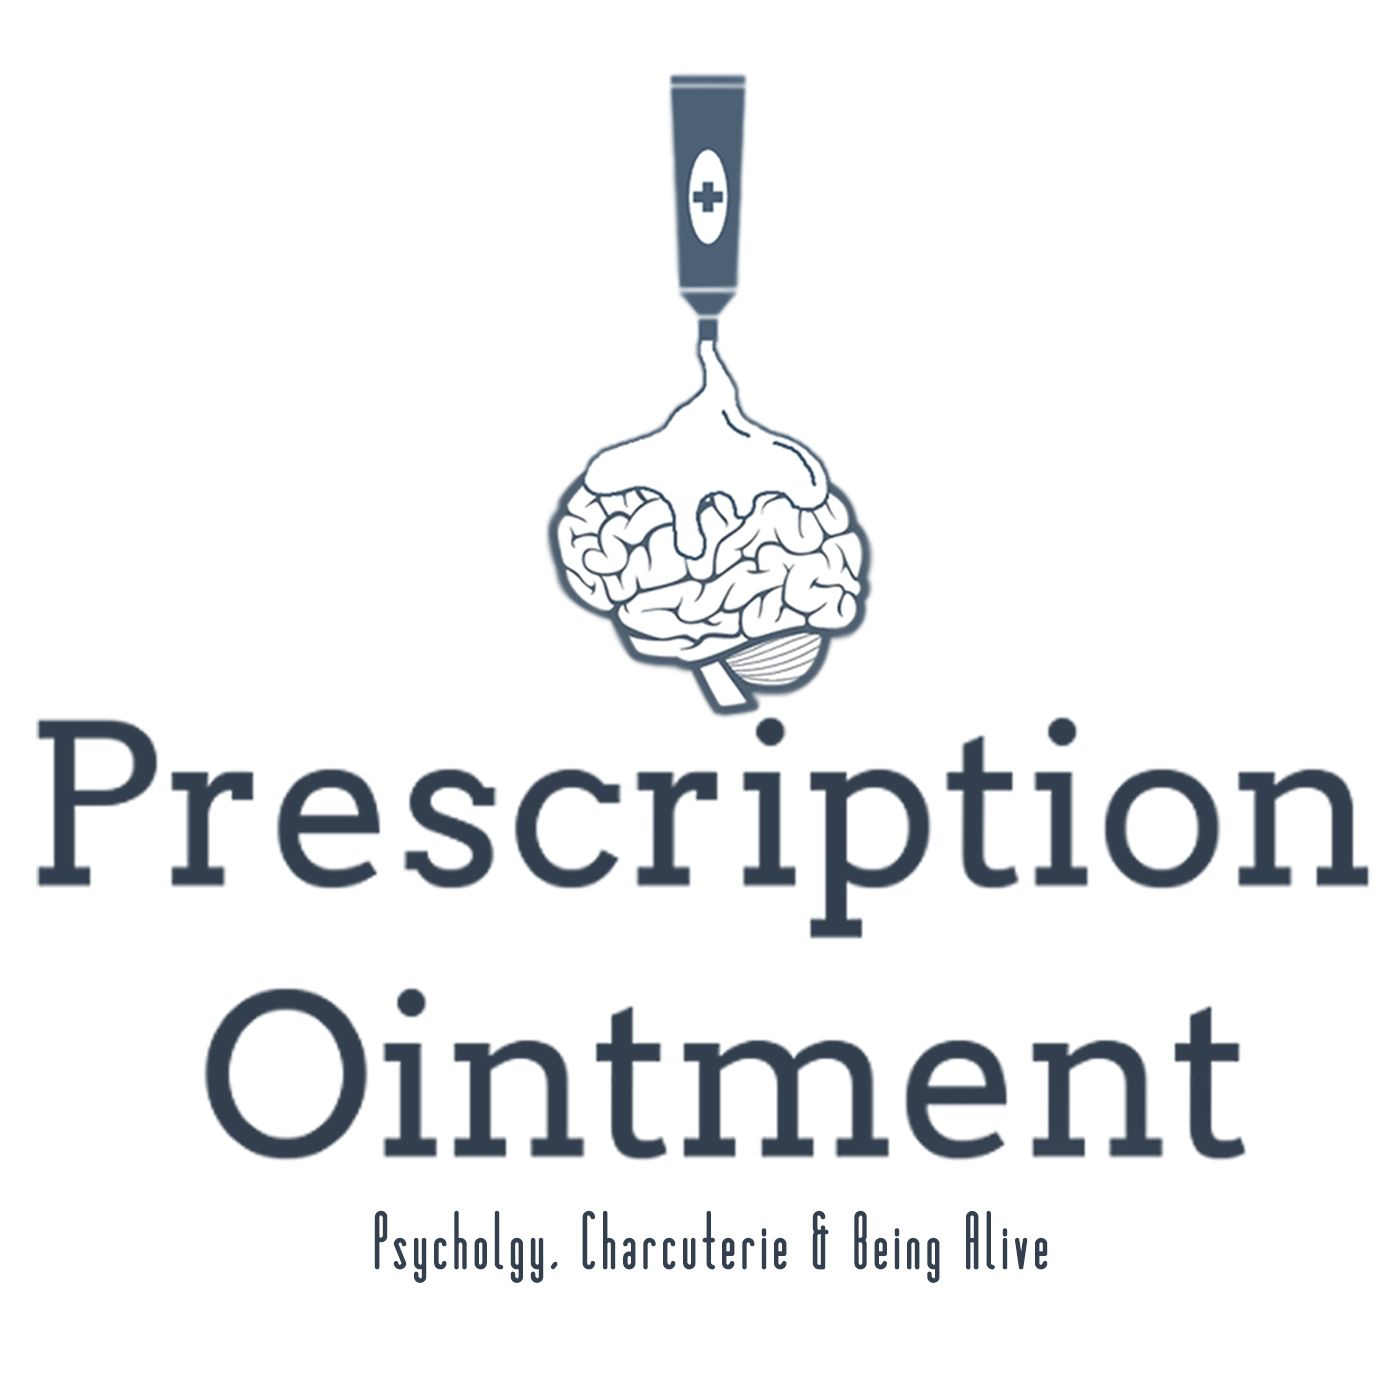 Prescription Ointment